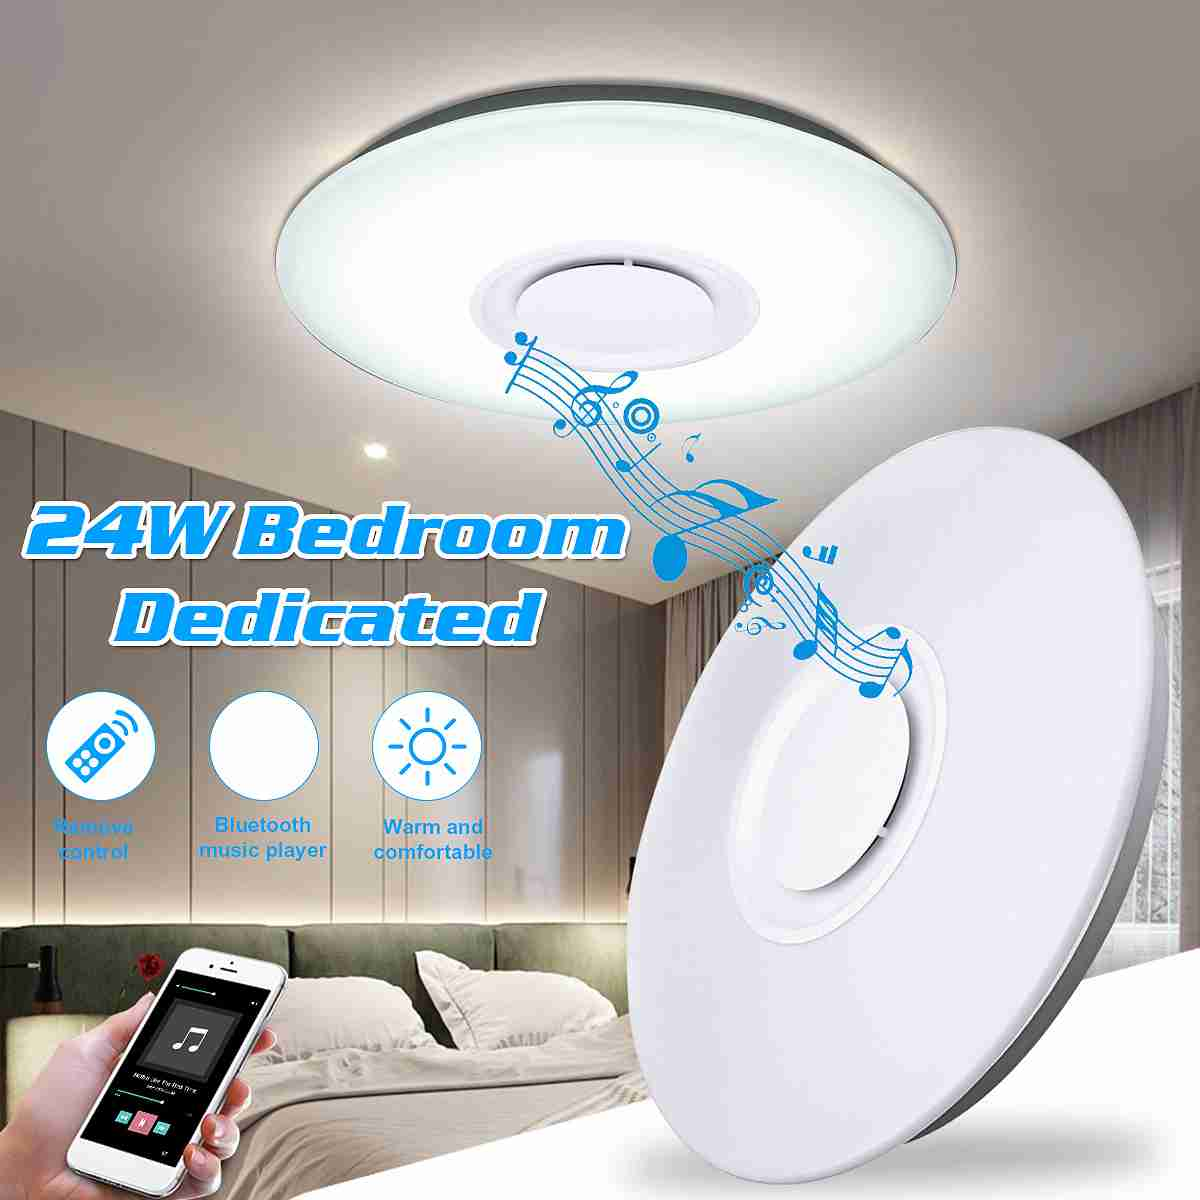 Smuxi Modern 220V LED Ceiling Light RGB Dimmable 24W APP Control Bluetooth Living Room Bedroom Music Ceiling Lamp 24w modern acrylic led ceiling light bluetooth speaker music player rgb ceiling lamp lights for living room bedroom lighting